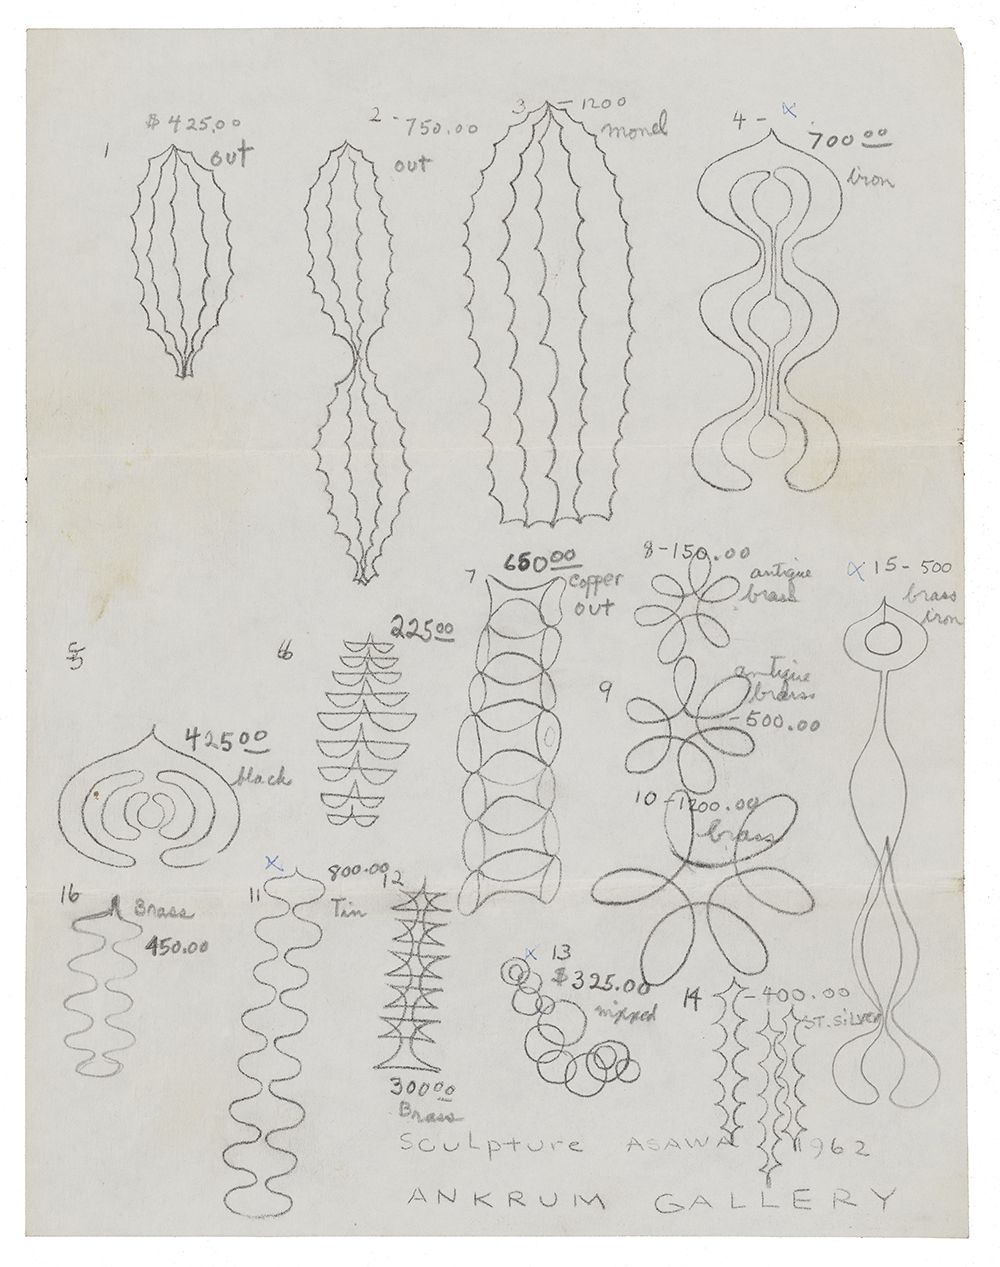 Pencil line drawings of sculptural forms numbered with notes.